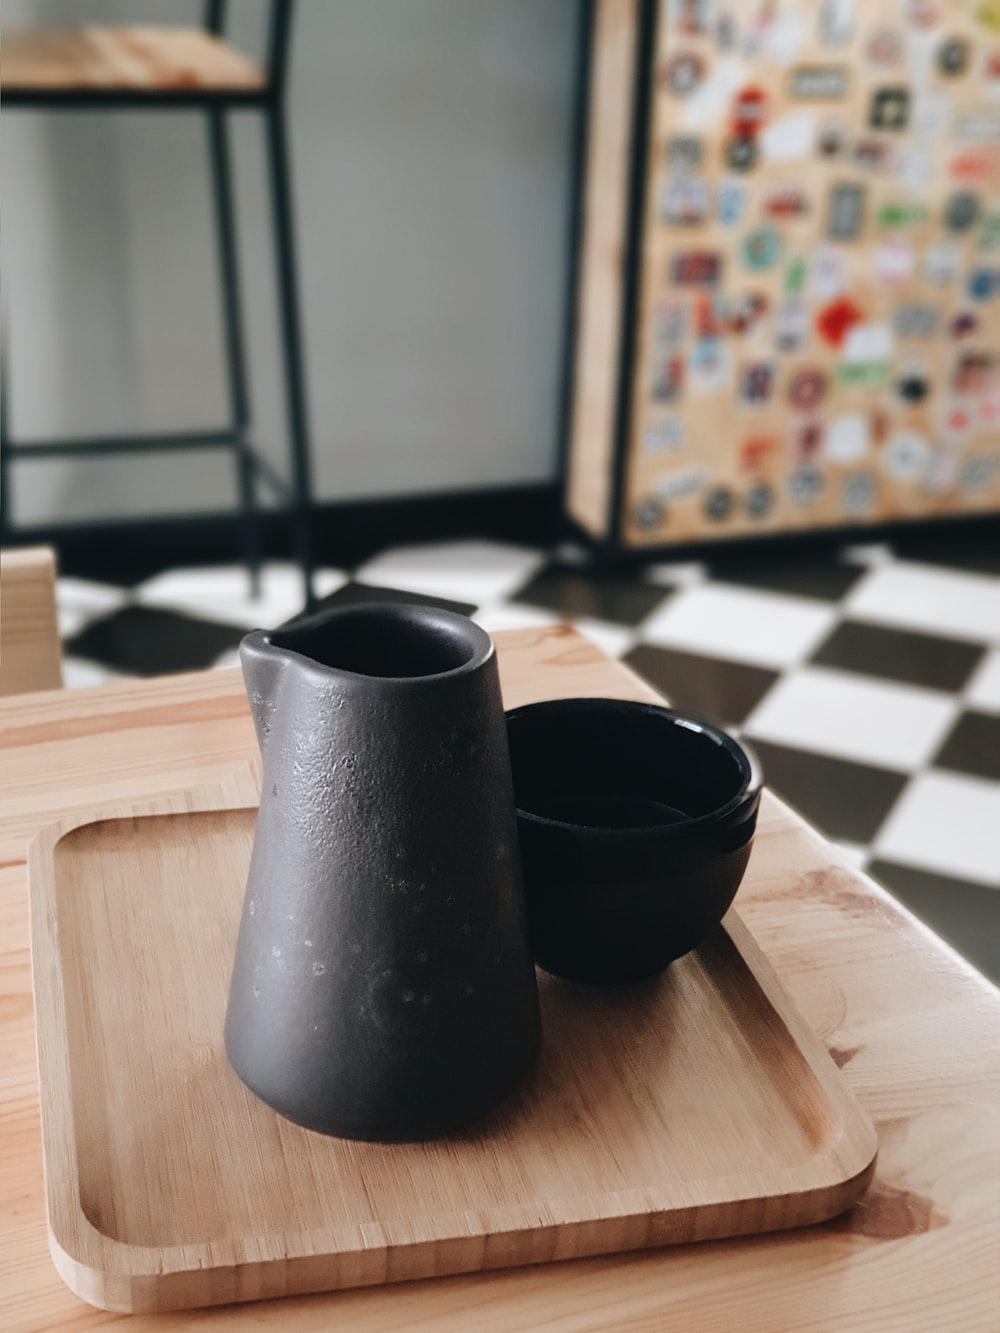 black pitcher on brown wooden table